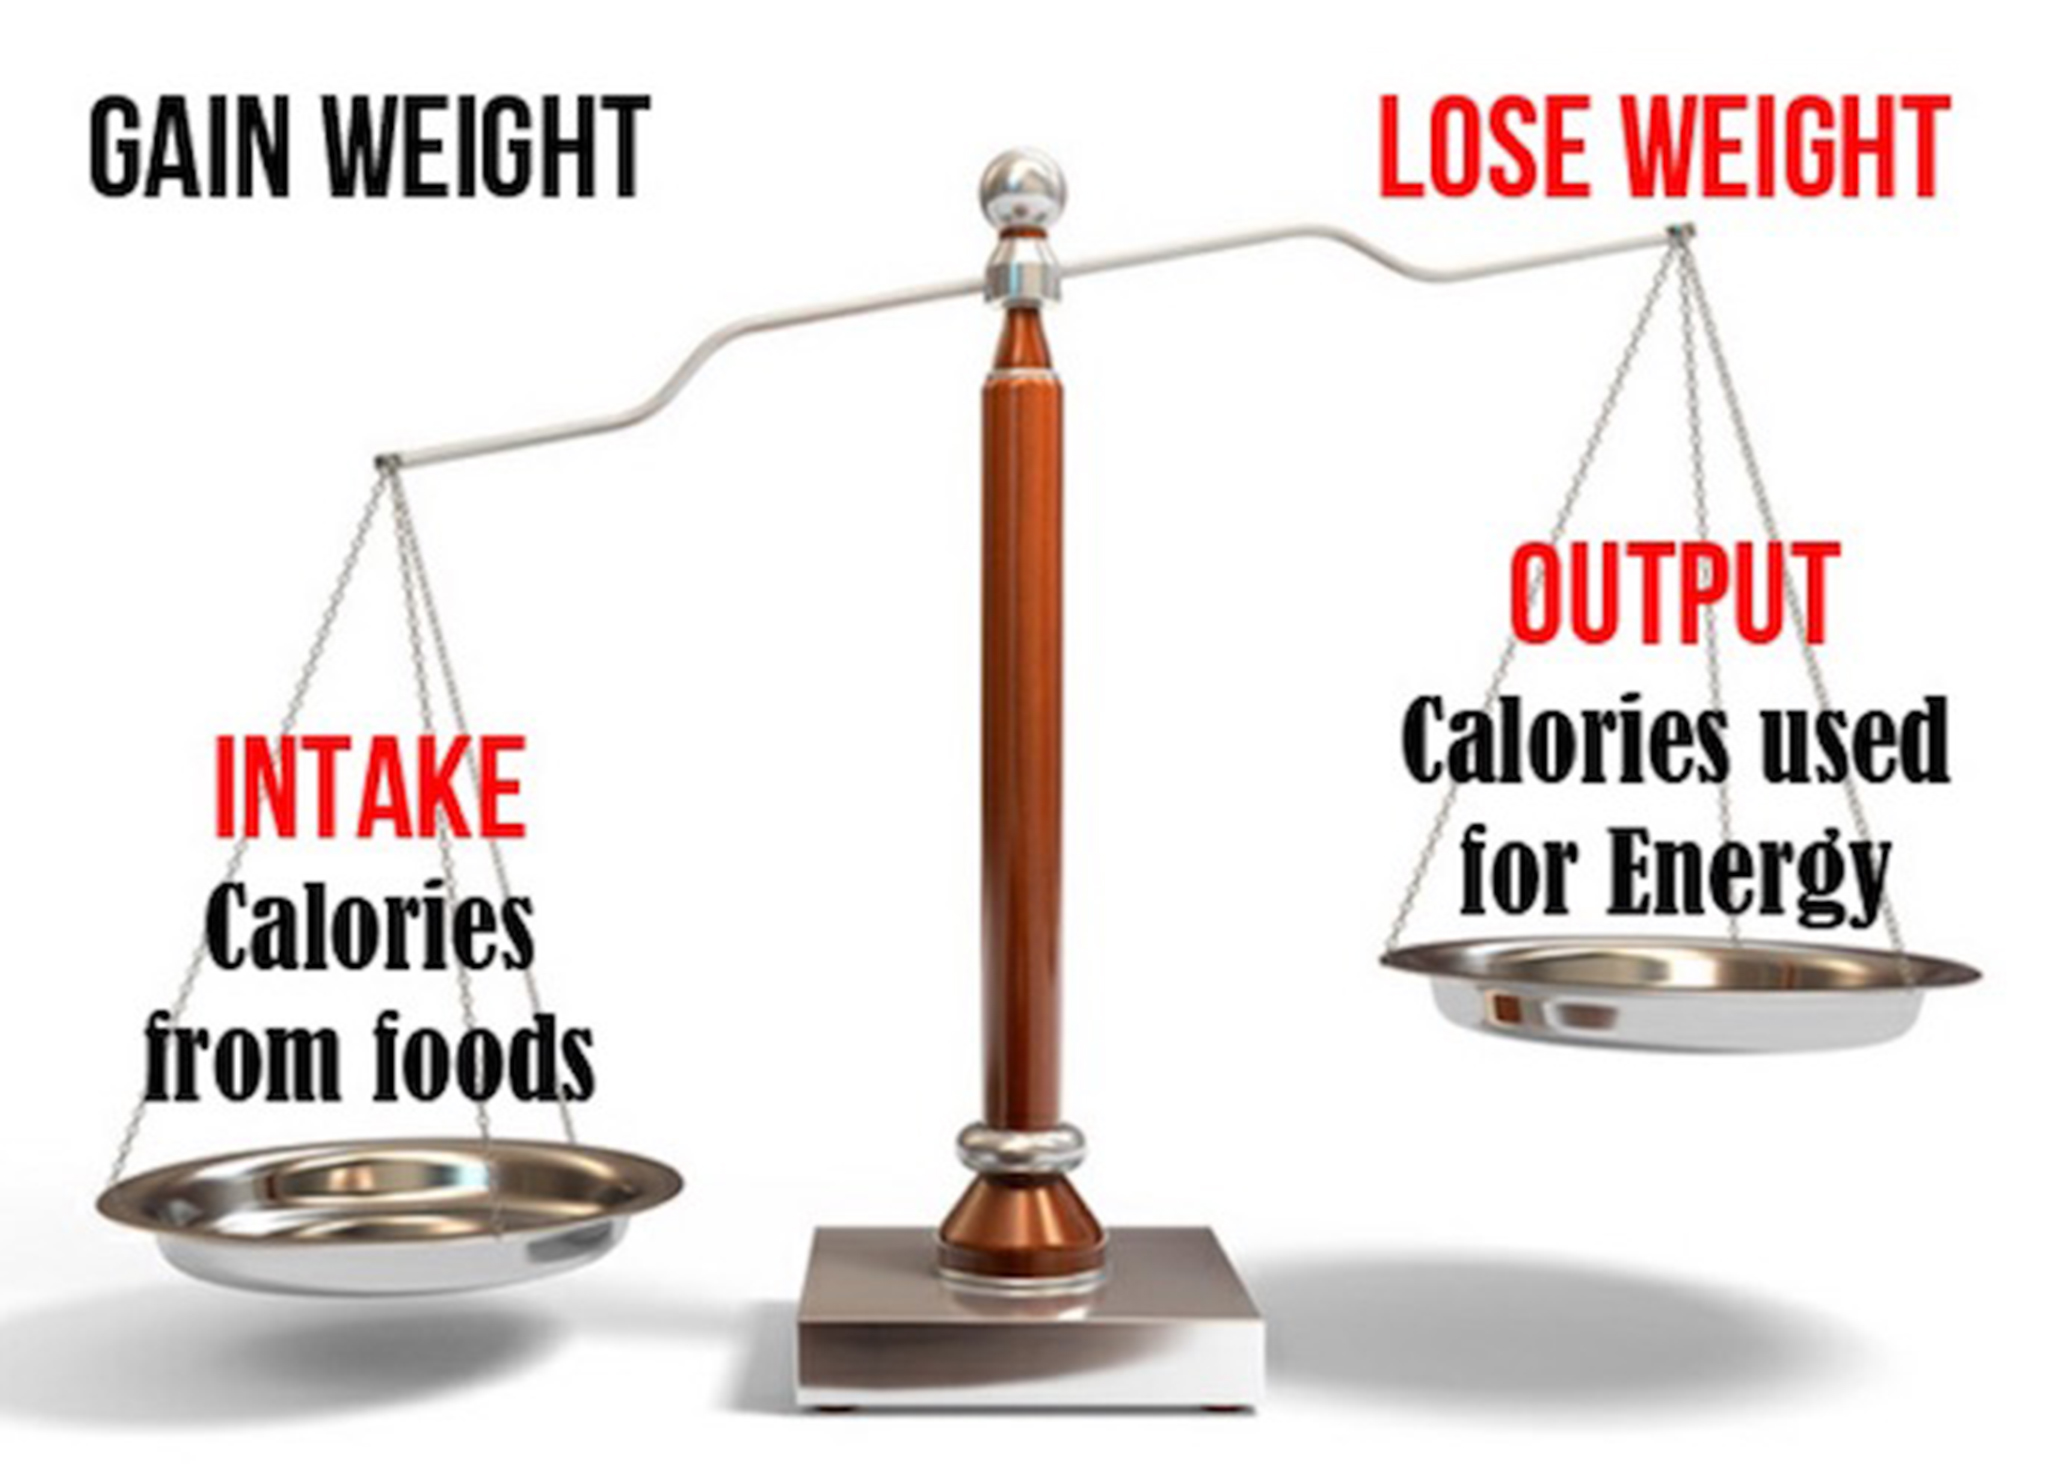 Exercise vs. Diet: Which Is More Important for Weight Loss?